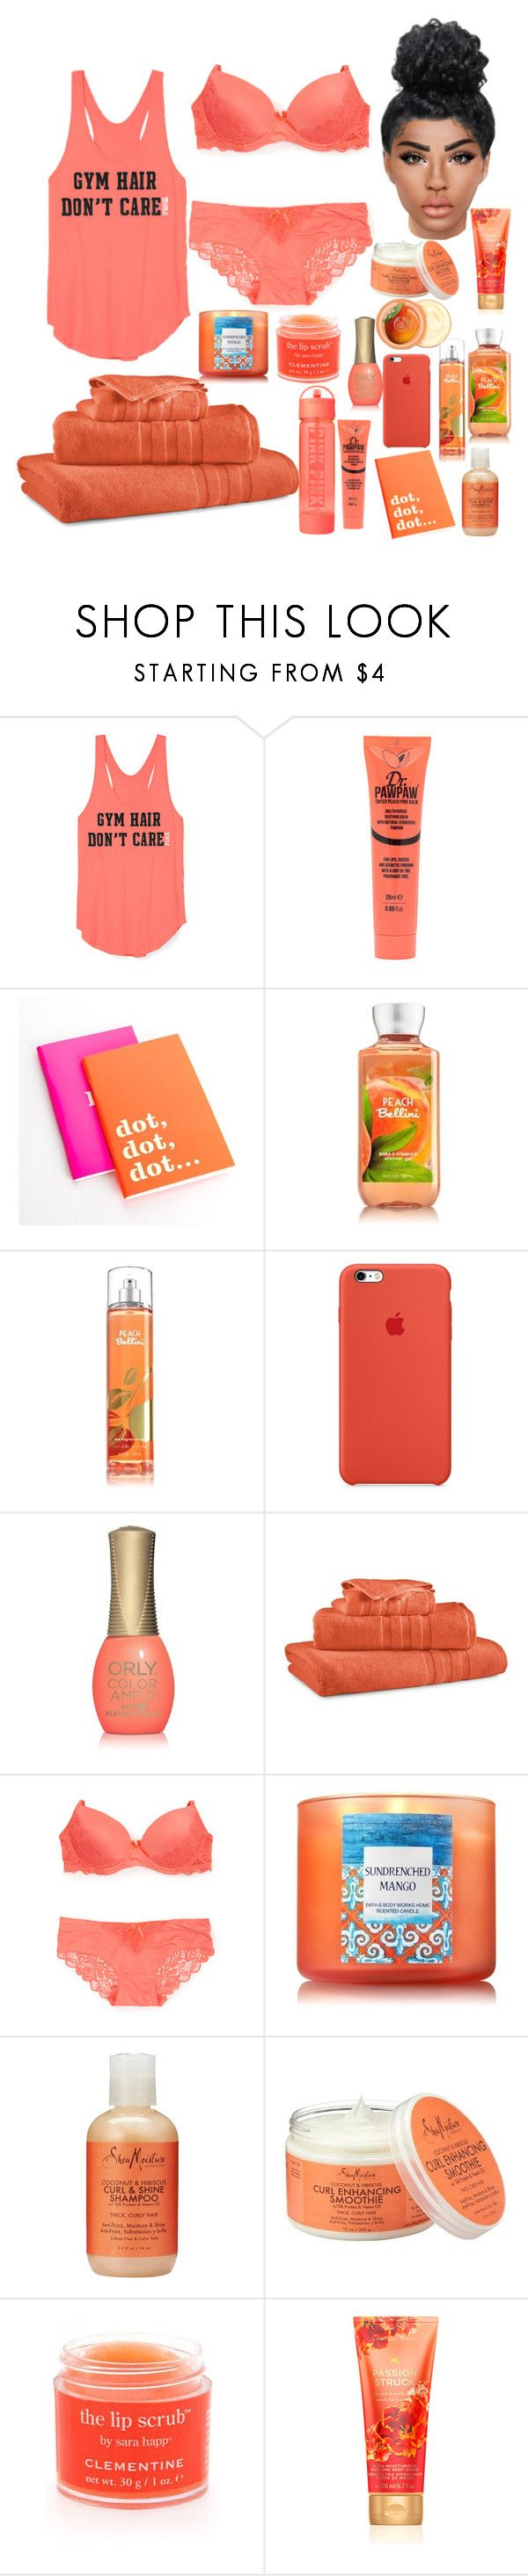 """Let me be LAZY in PEACH // Homebody"" by noieelovesyou ❤ liked on Polyvore featuring Victoria's Secret, Dr. Paw Paw, Kate Spade, ORLY, Ralph Lau..."